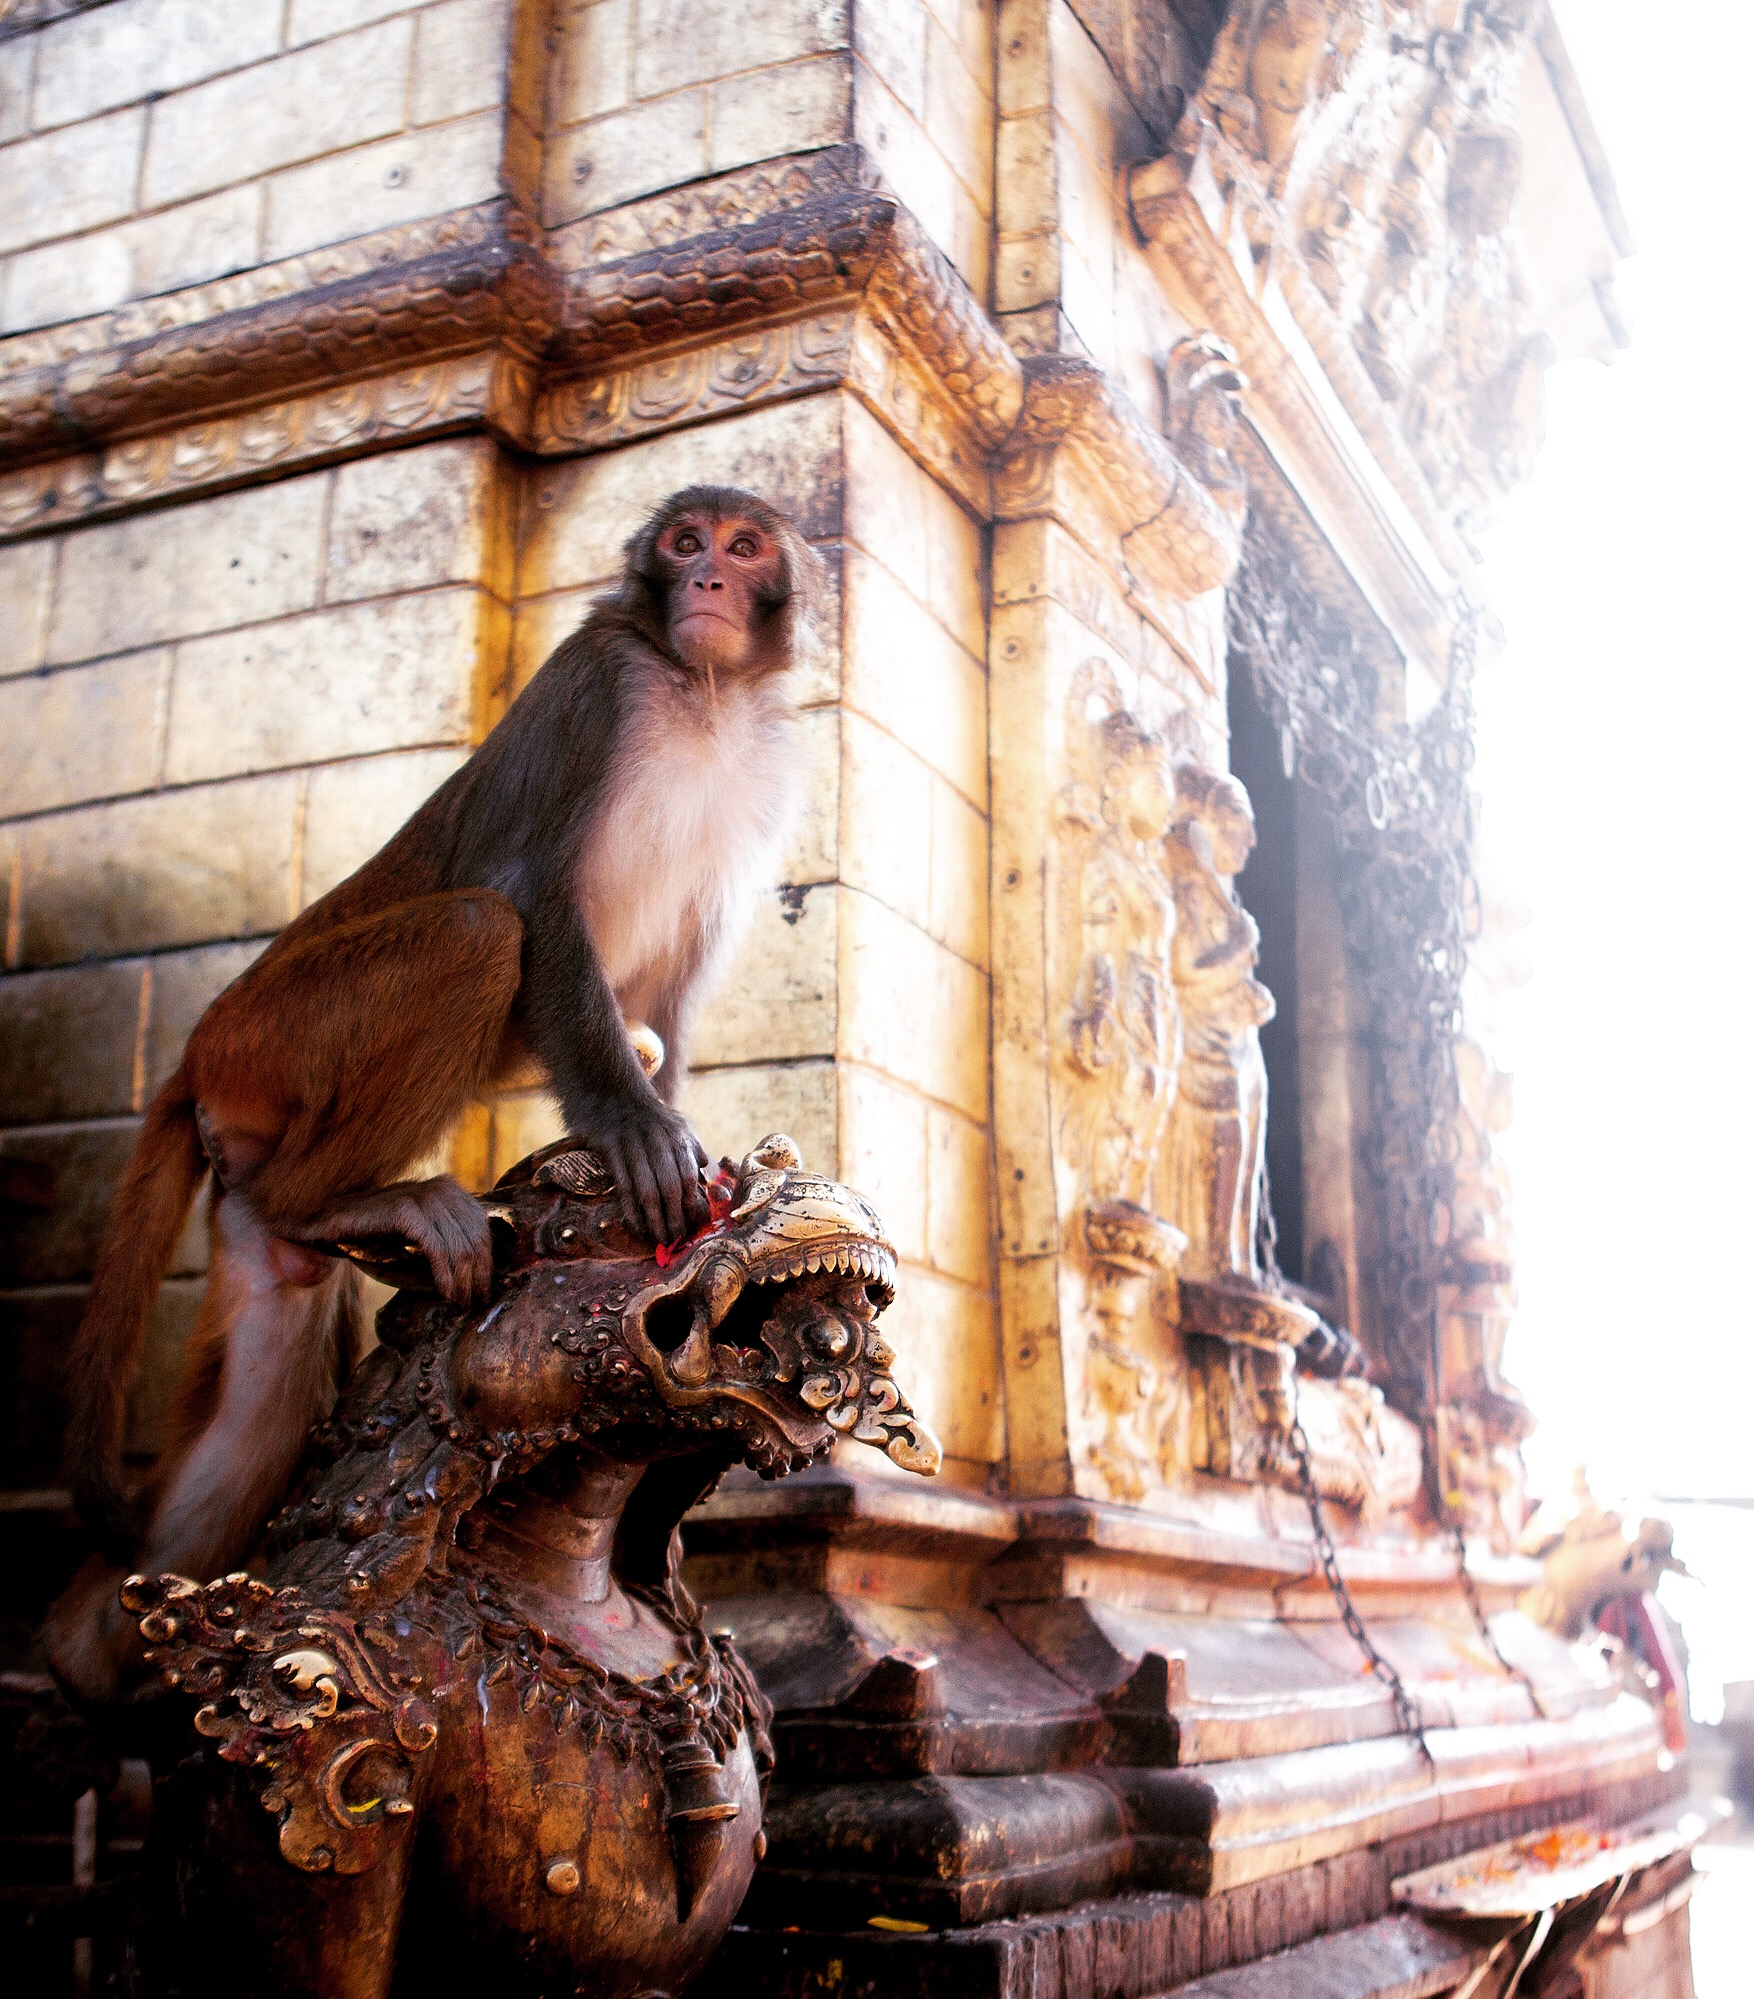 Nov 16.2, 2016   Swayambhunath is one of the most sacred Buddhist pilgrimage sites in the world. It sits central to, yet high above Kathmandu Valley. Also known as the Monkey Temple, wild macaques roam the temple grounds as holy figures, the result of endemic Buddhist mythology. This temple was wracked by the 2015 earthquakes in Nepal and the rebuild was active during our visit. The patrons both high in this temple, and of the ground, are still devastated by the natural disaster. They are also disturbed by how much history was shaken to the ground, but tell heartbreaking, personal stories of their families and livelihood being displaced from underneath.